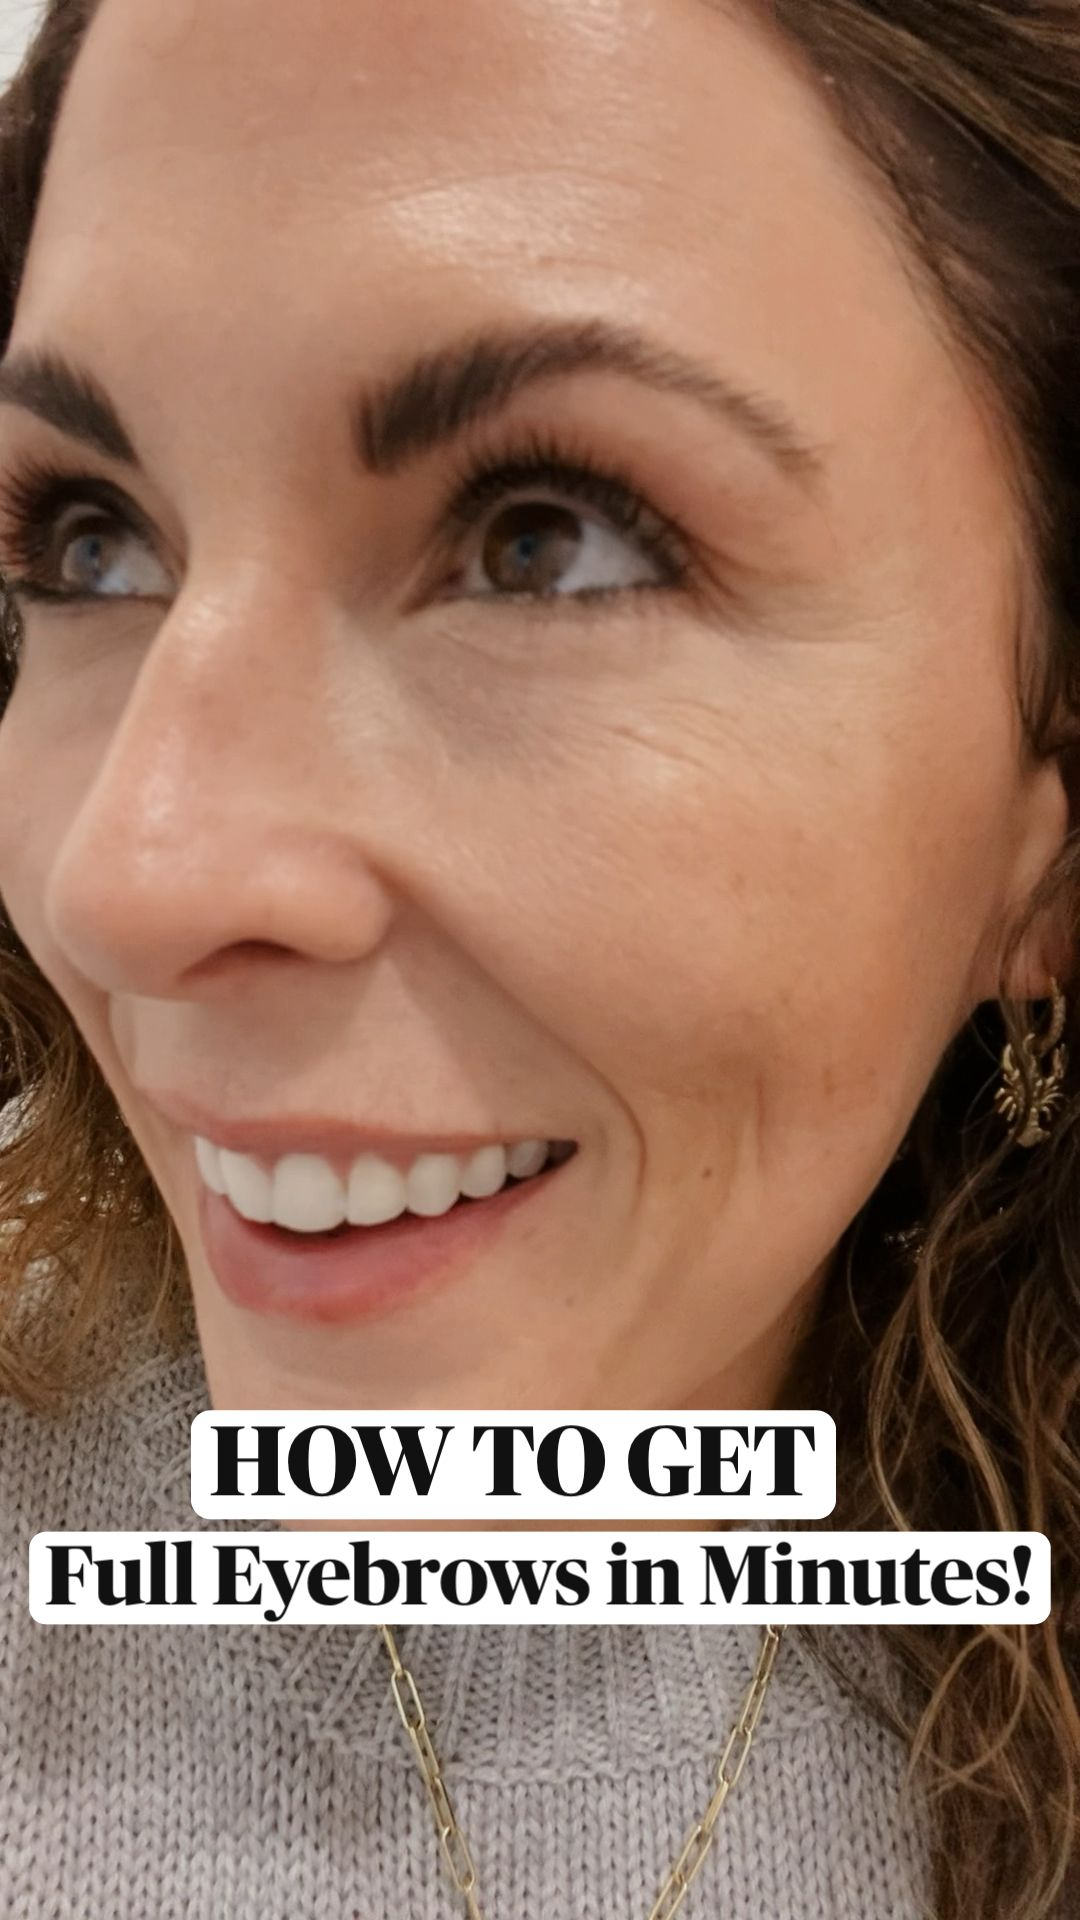 HOW TO GET FULL EYEBROWS INSTANTLY!